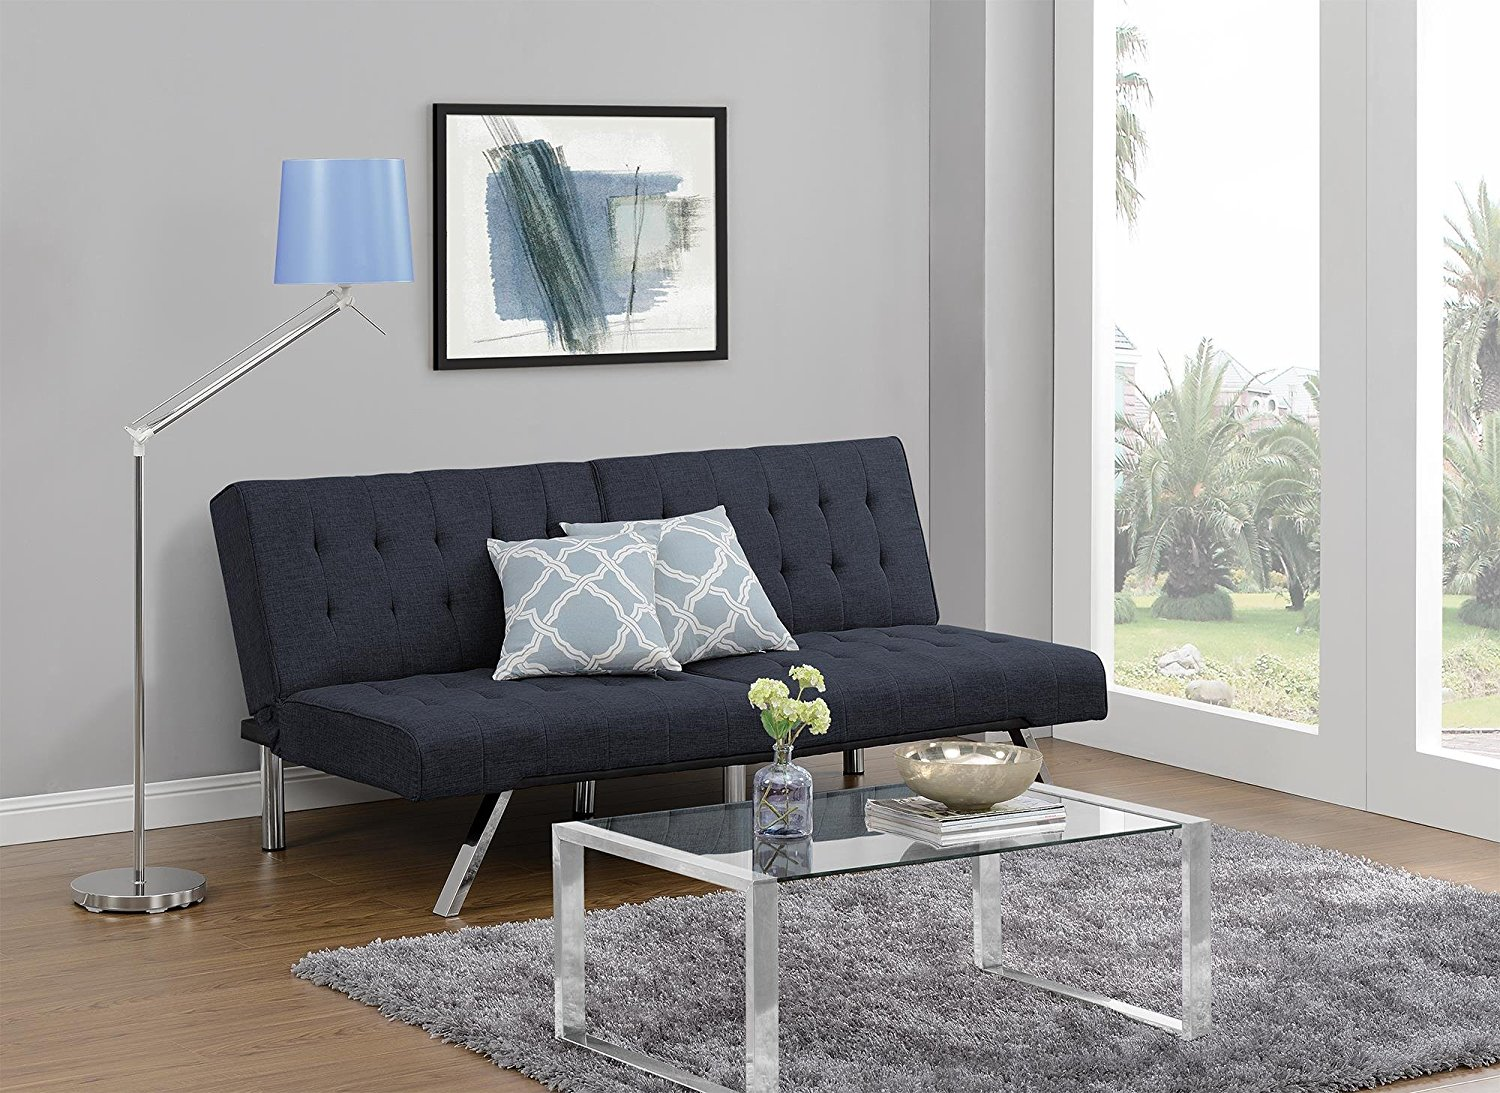 DHP Emily Futon Couch Bed, Modern Sofa Design Includes Sturdy Chrome Legs and Rich Linen Upholstery, Navy